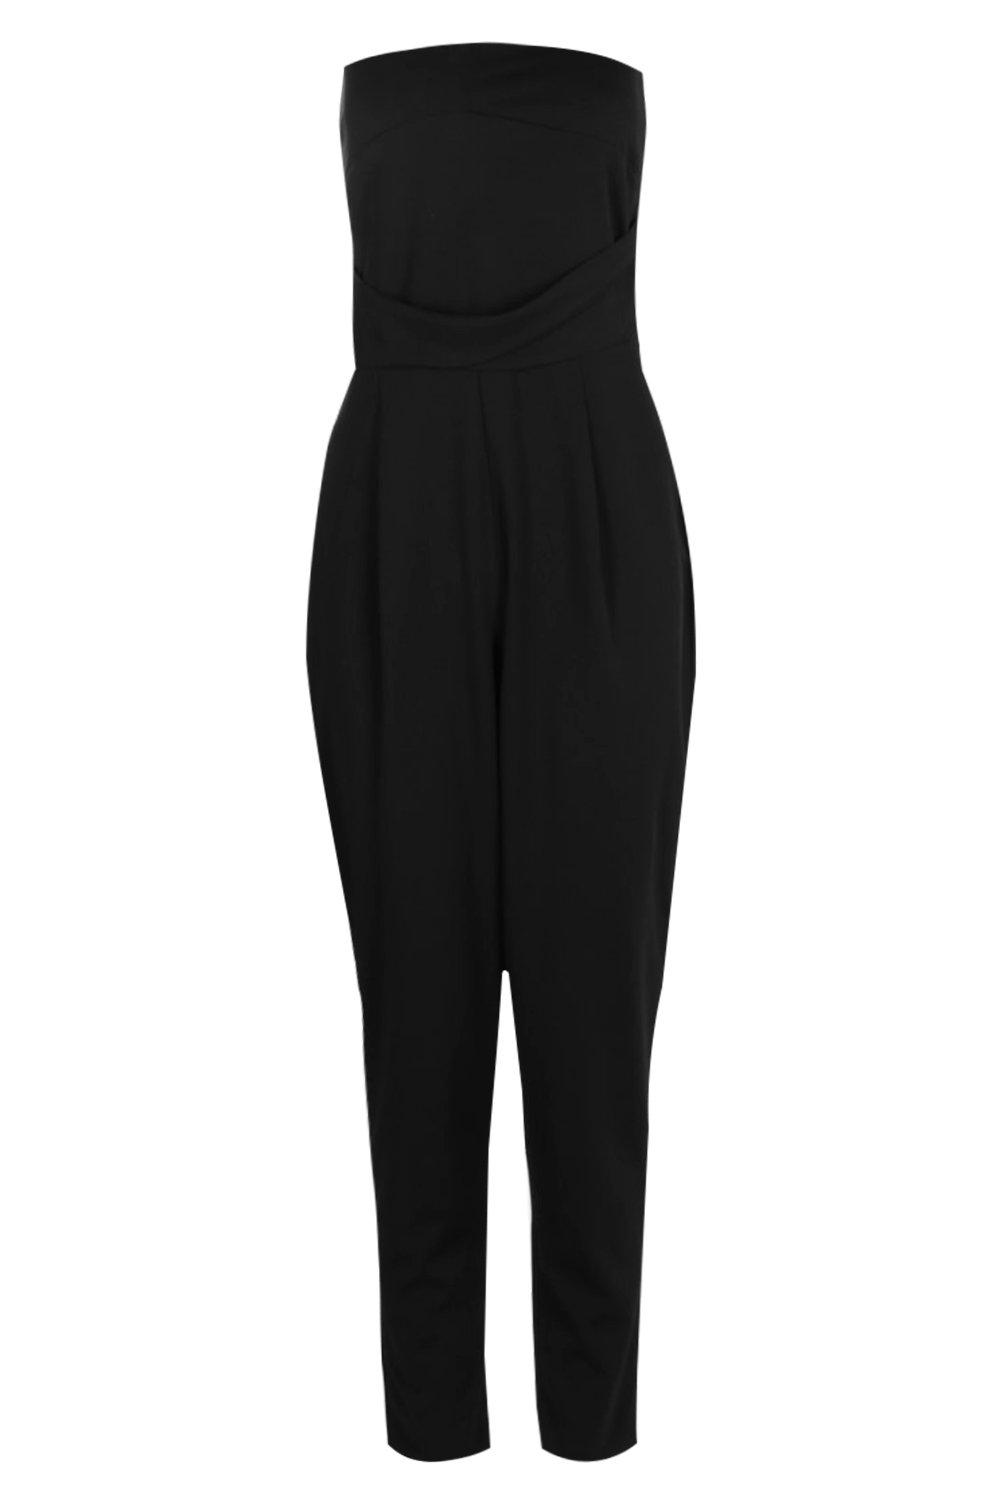 NEW-Boohoo-Womens-Marlin-Bandeau-Tailored-Woven-Slim-Fit-Jumpsuit-in